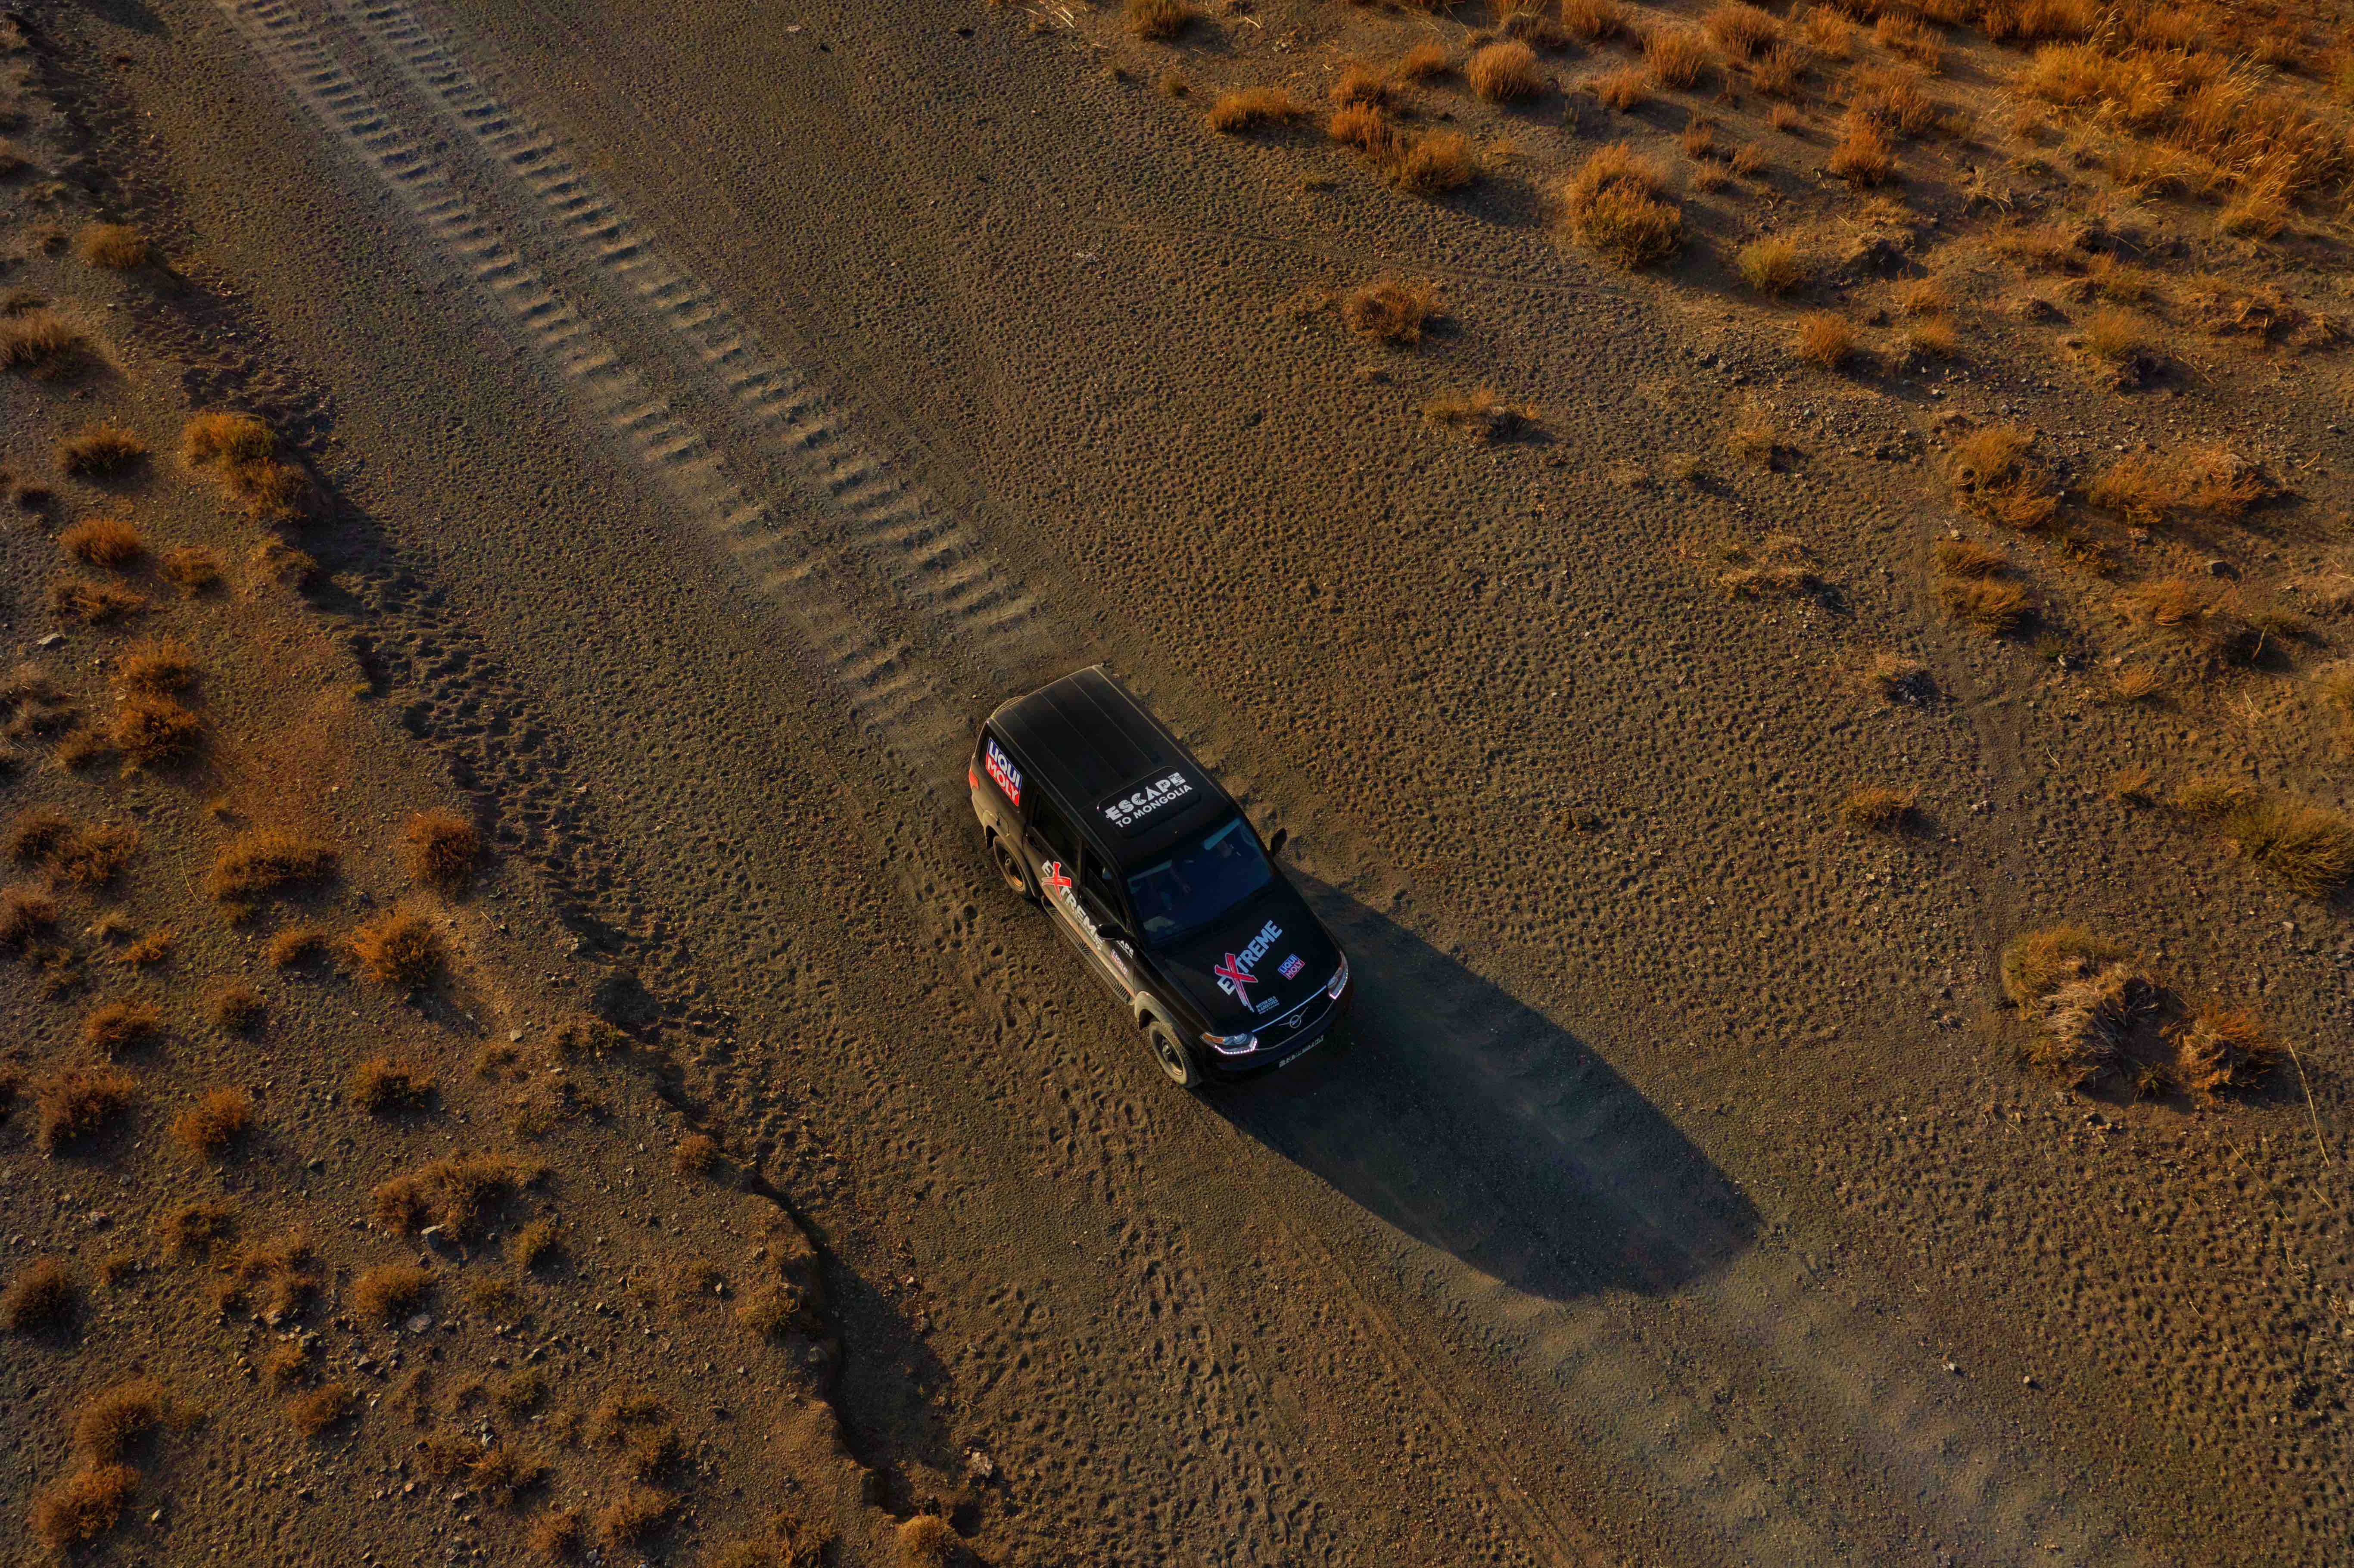 Offroad driving corrugations